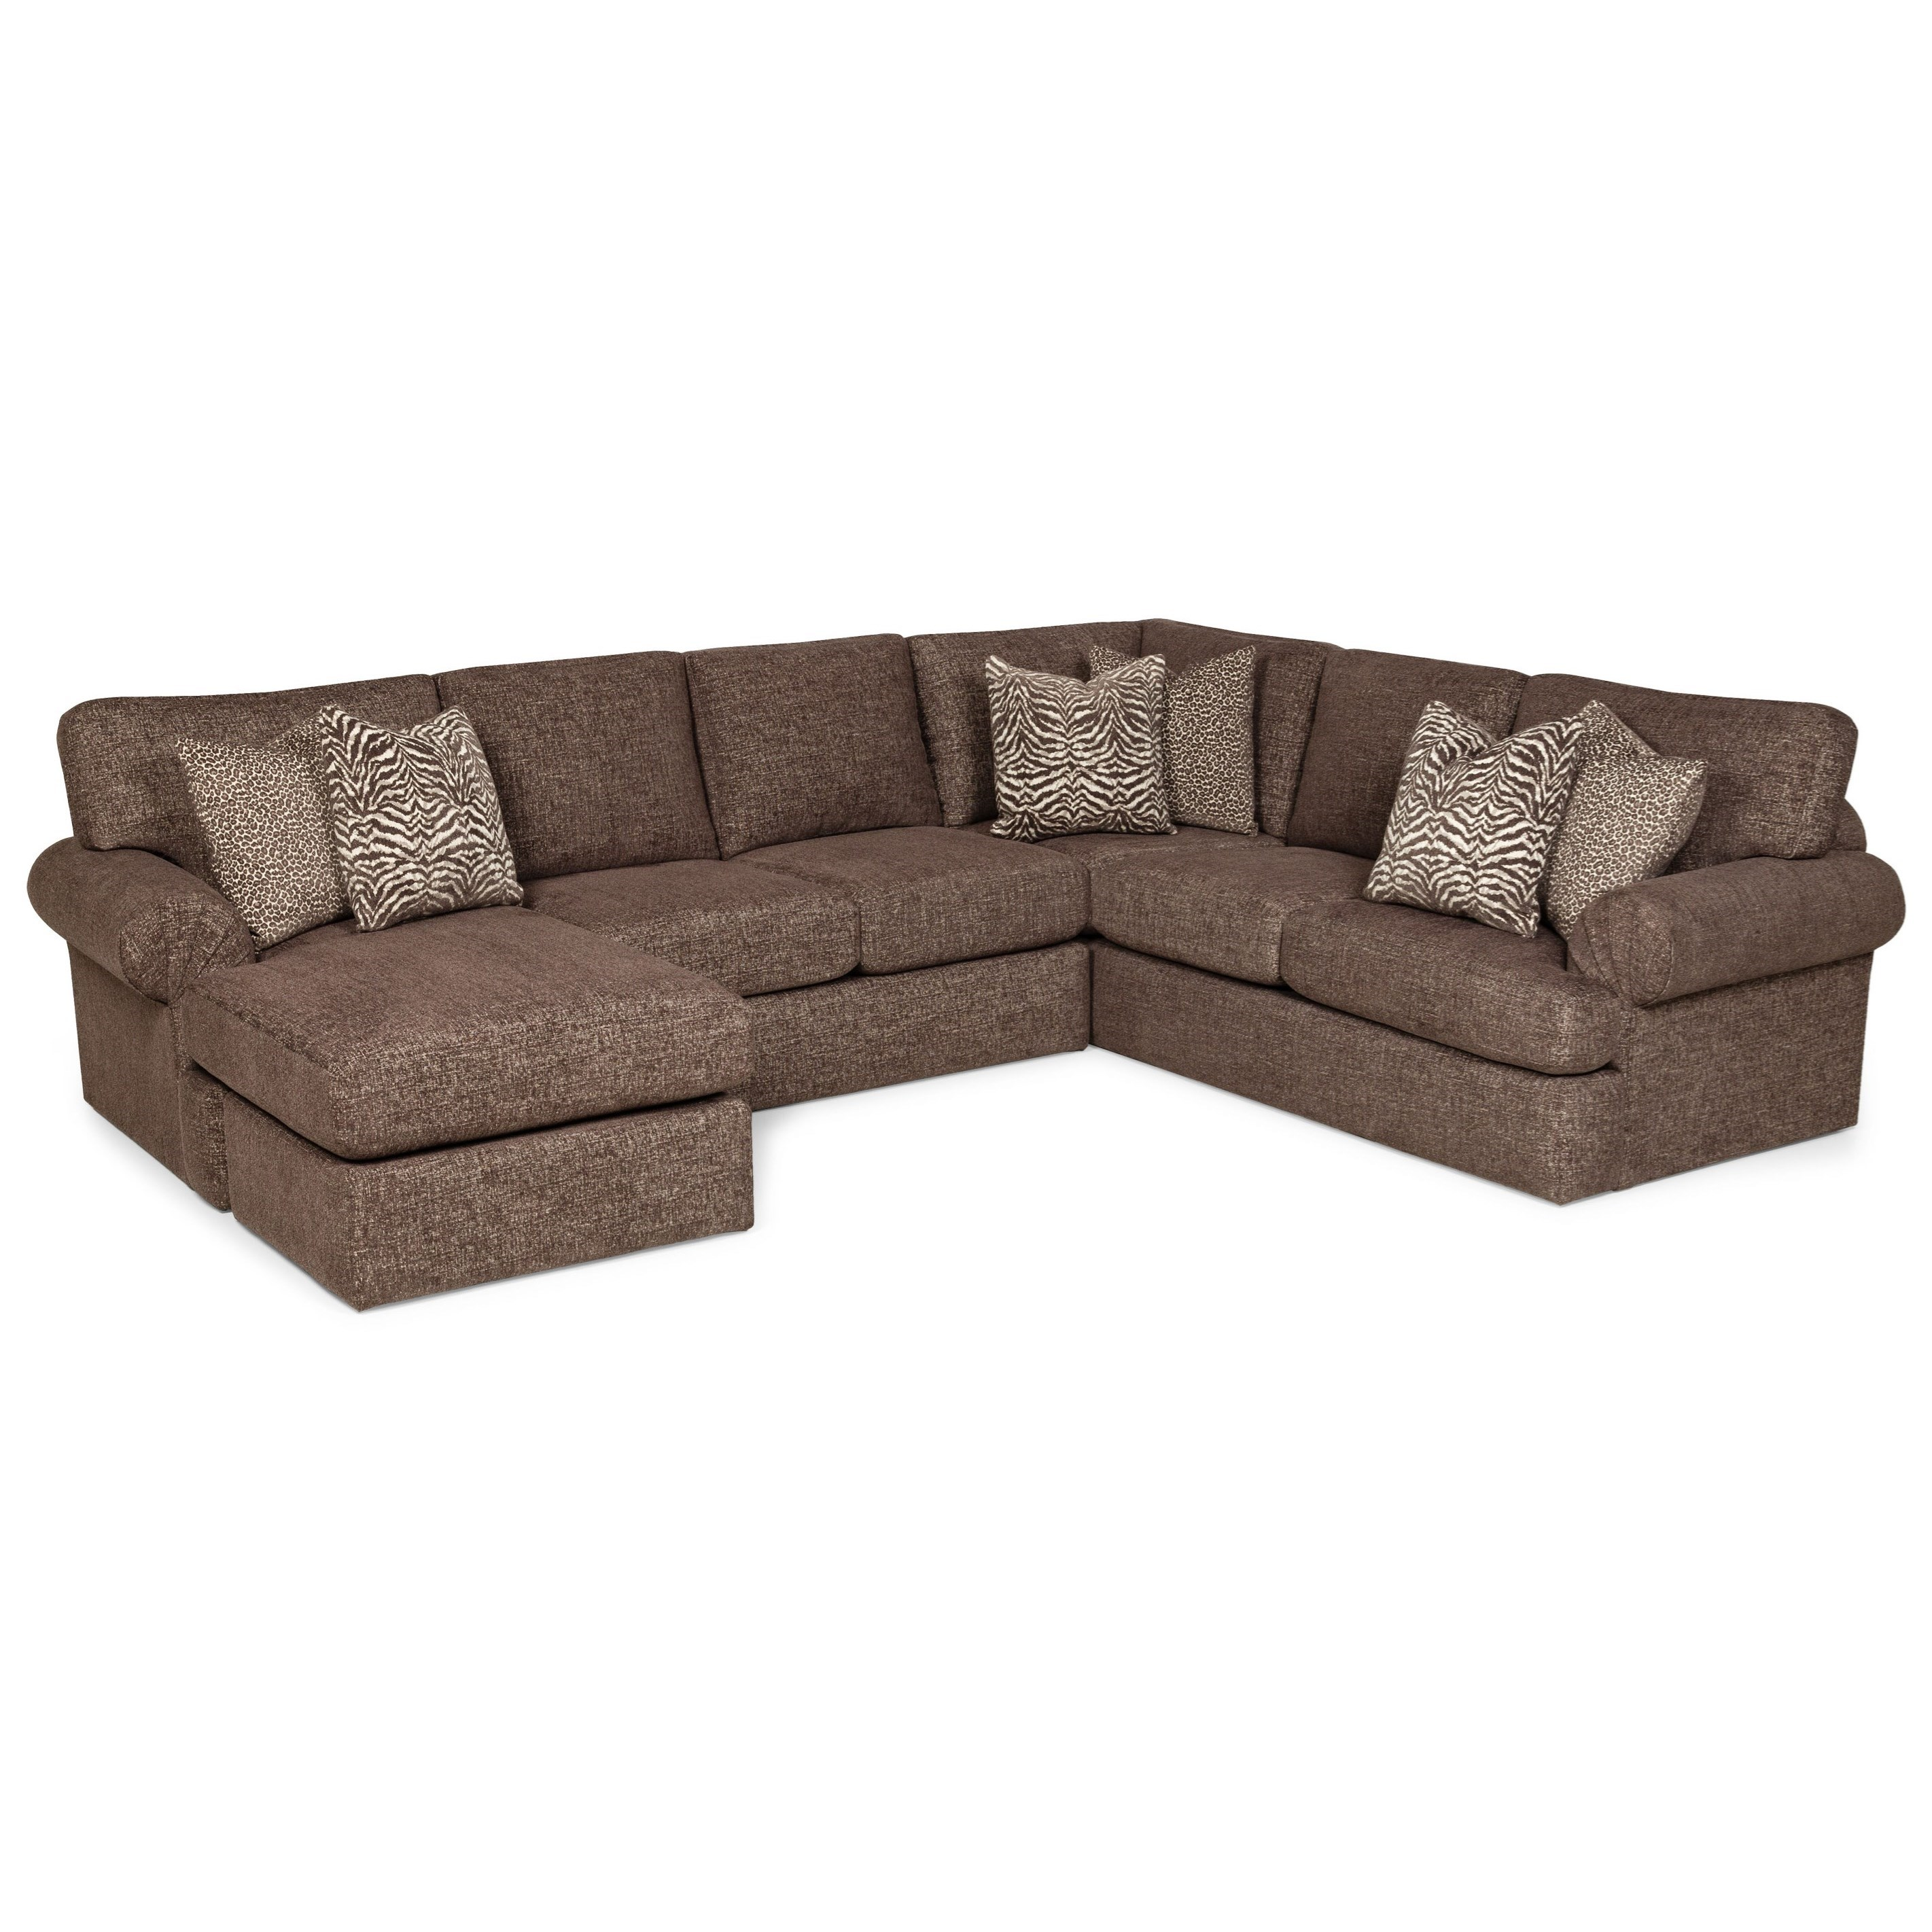 371 5-Seat Sectional Sofa w/ LAF Chaise by Stanton at Wilson's Furniture